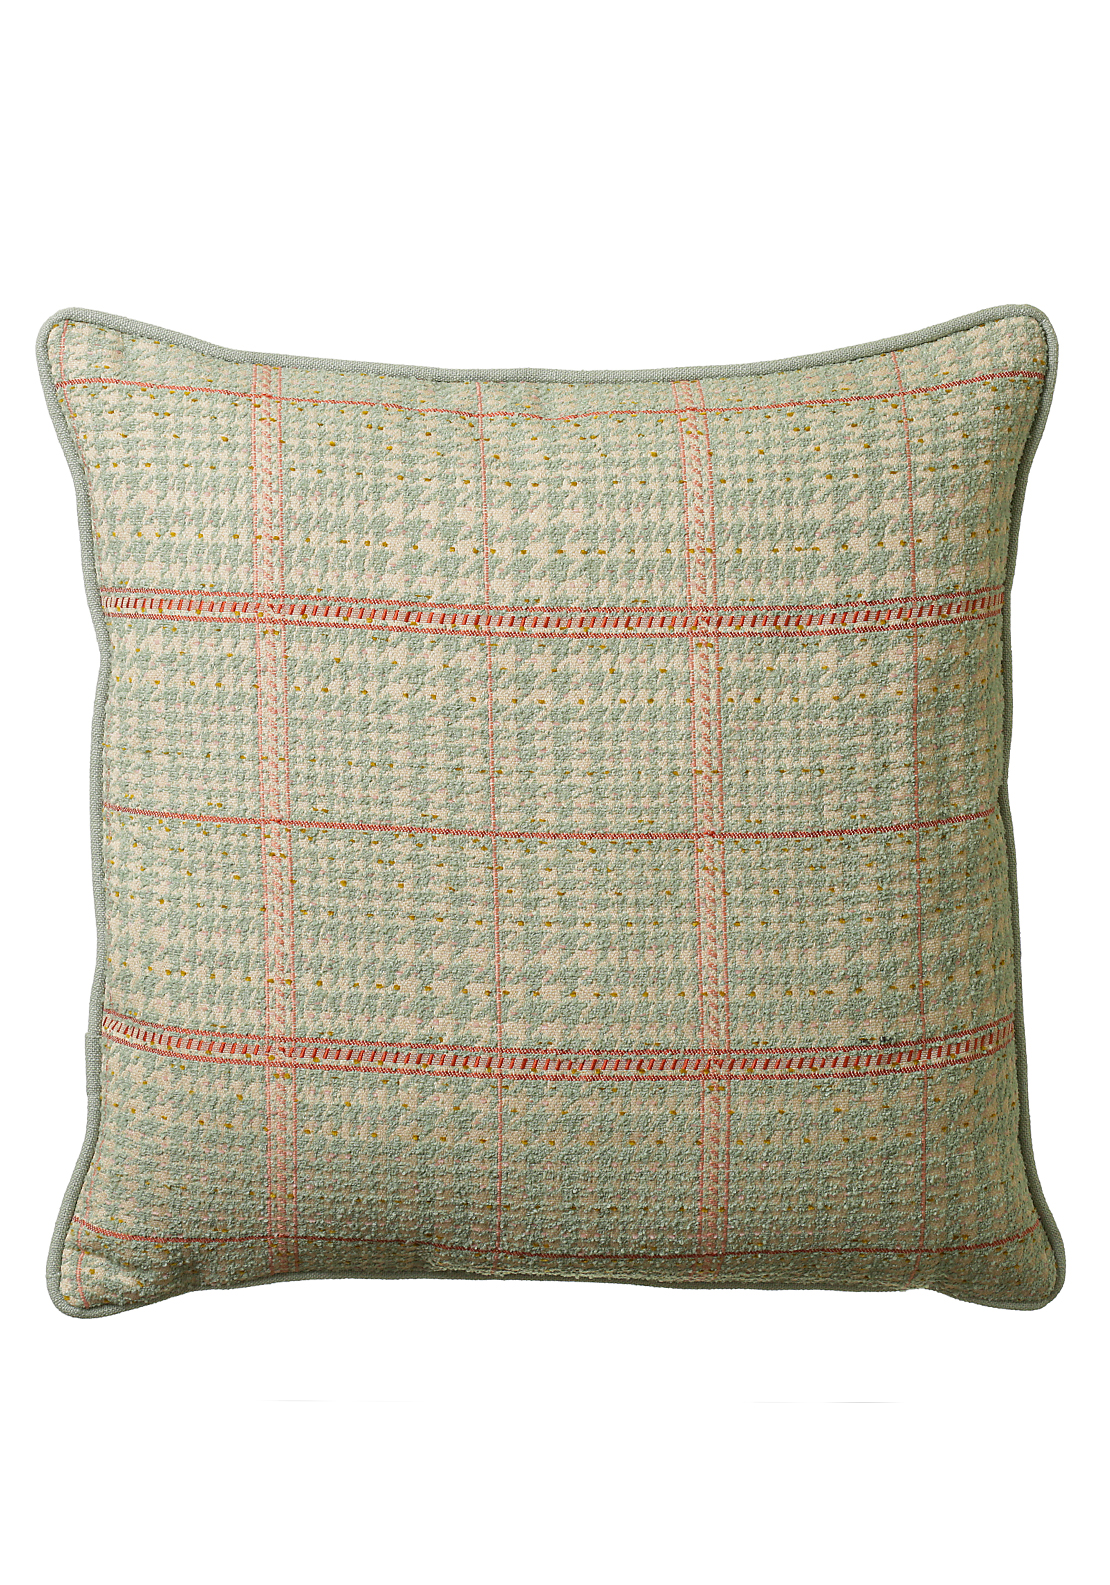 Scatterbox Bracken Cushion Aqua 43 x 43cm